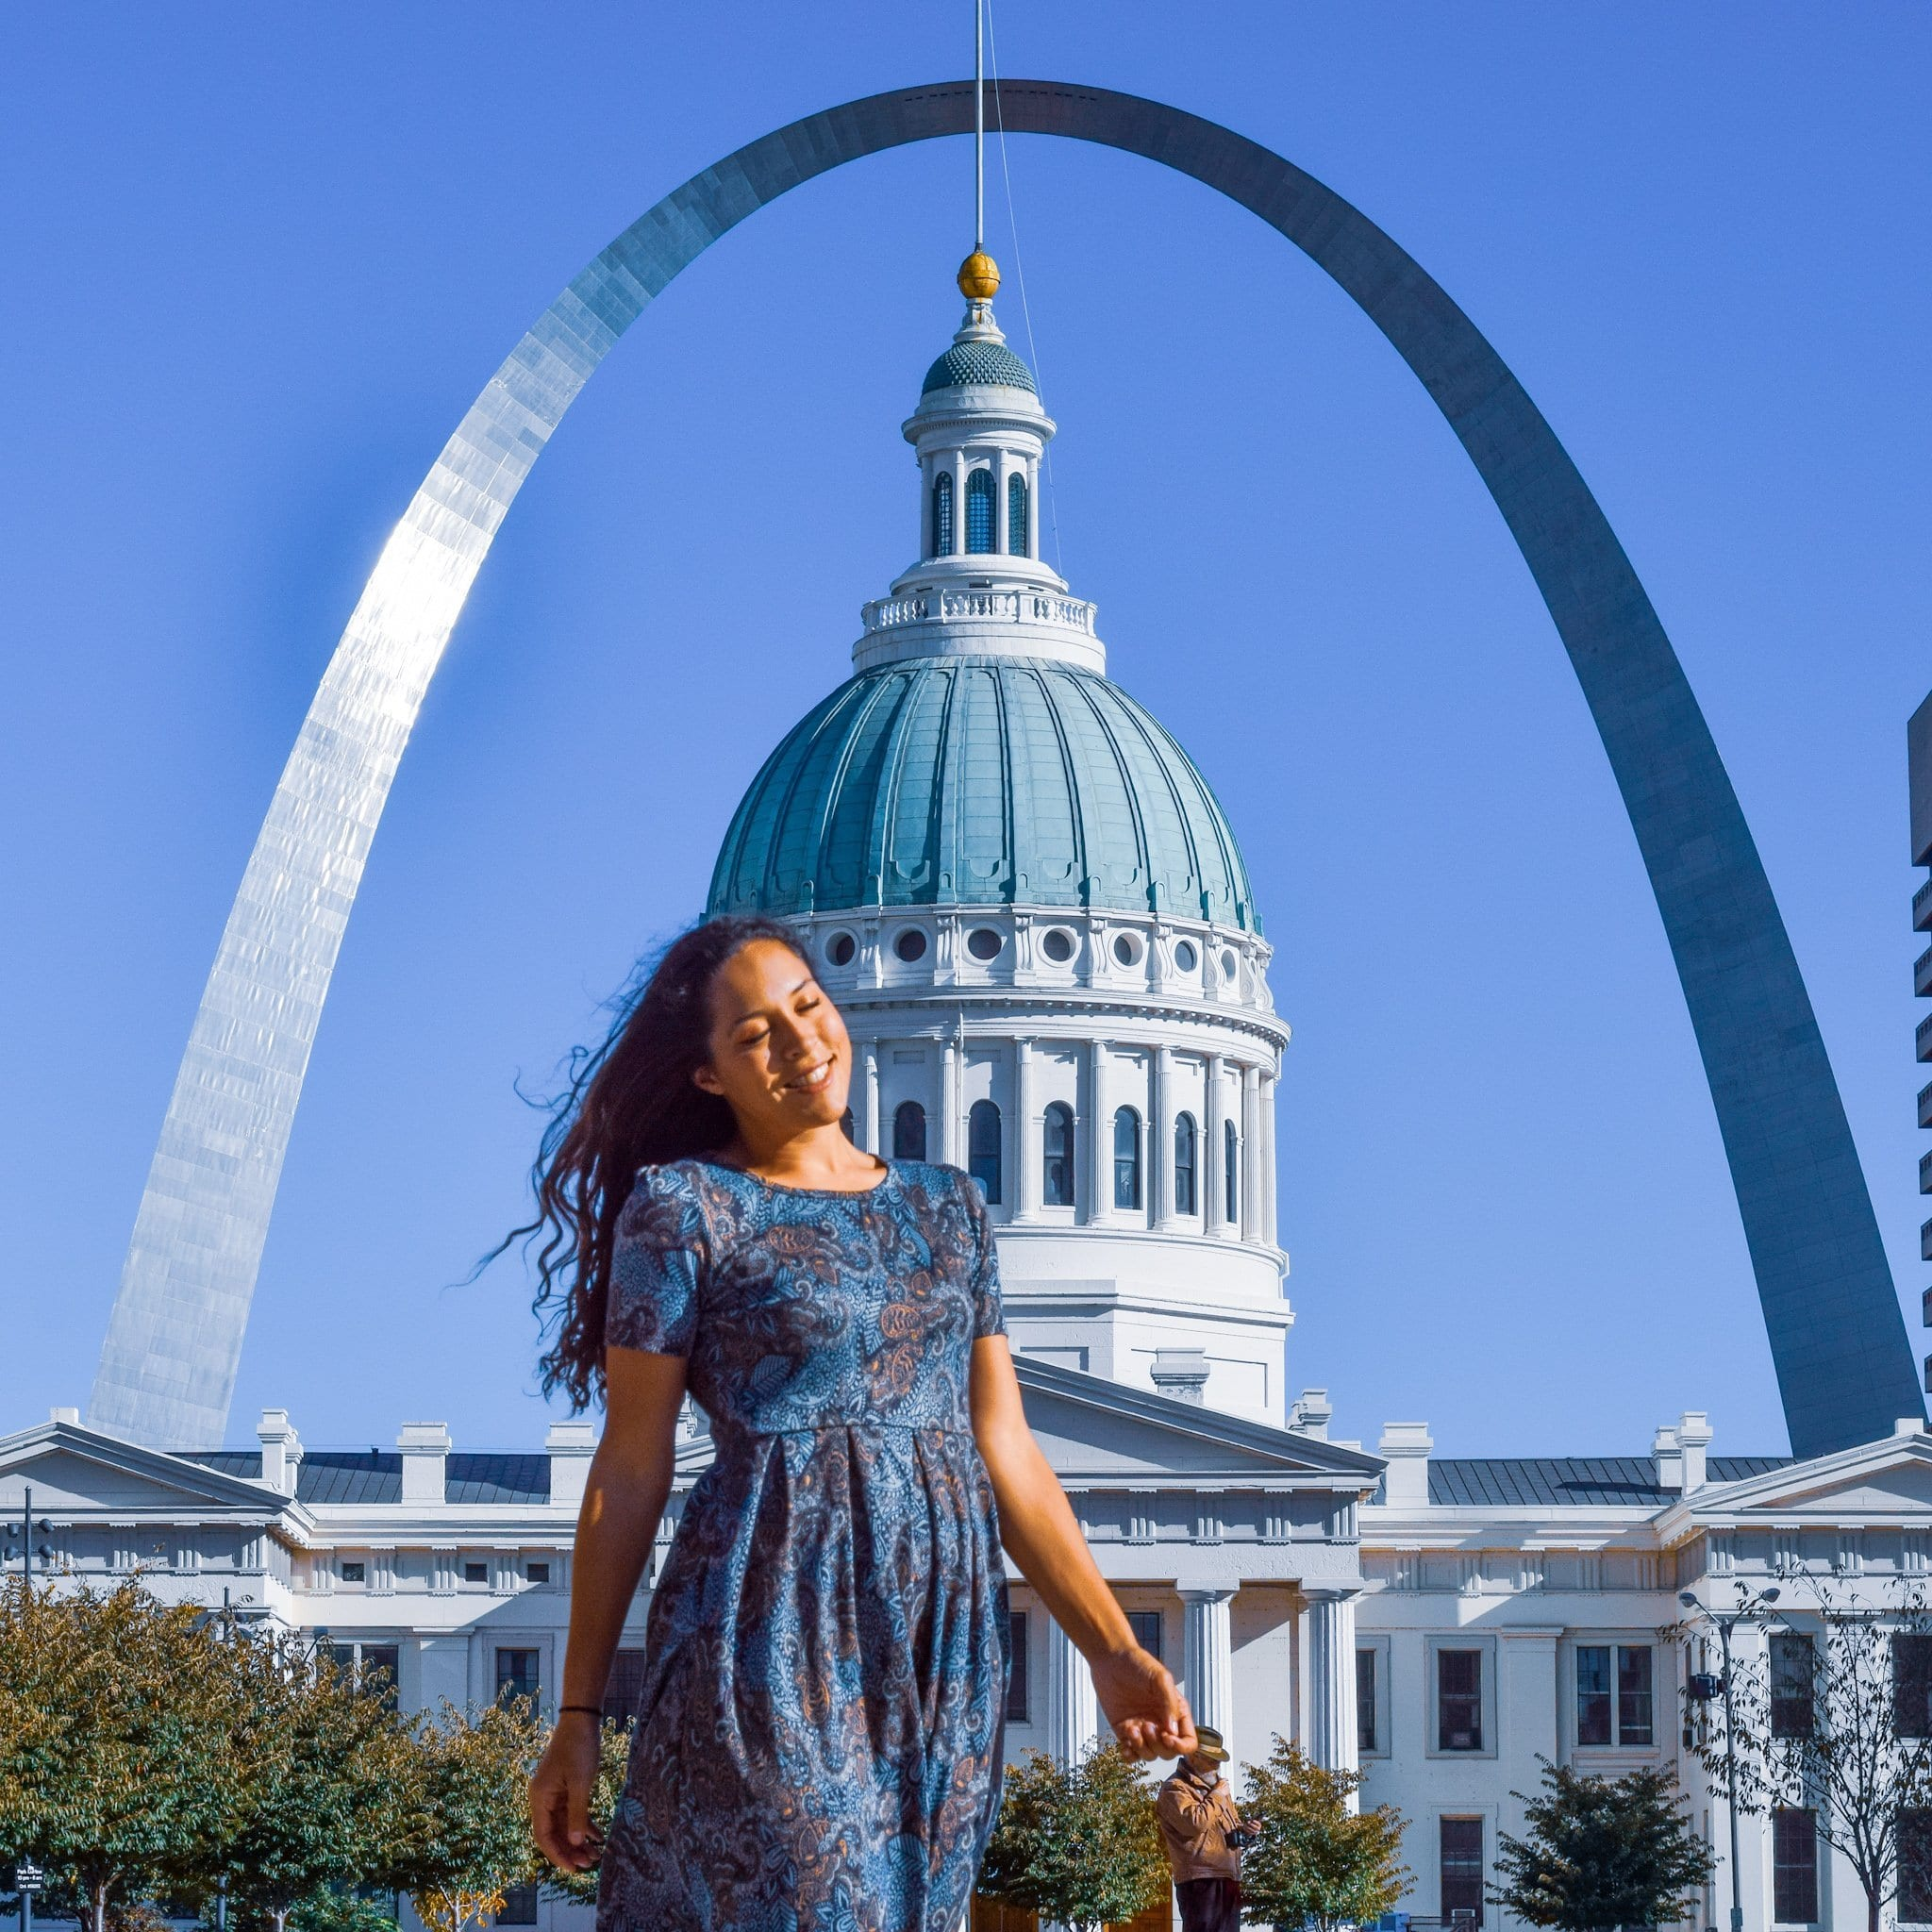 Sarah Fay in front of the Gateway Arch and Old Court House in Saint Louis